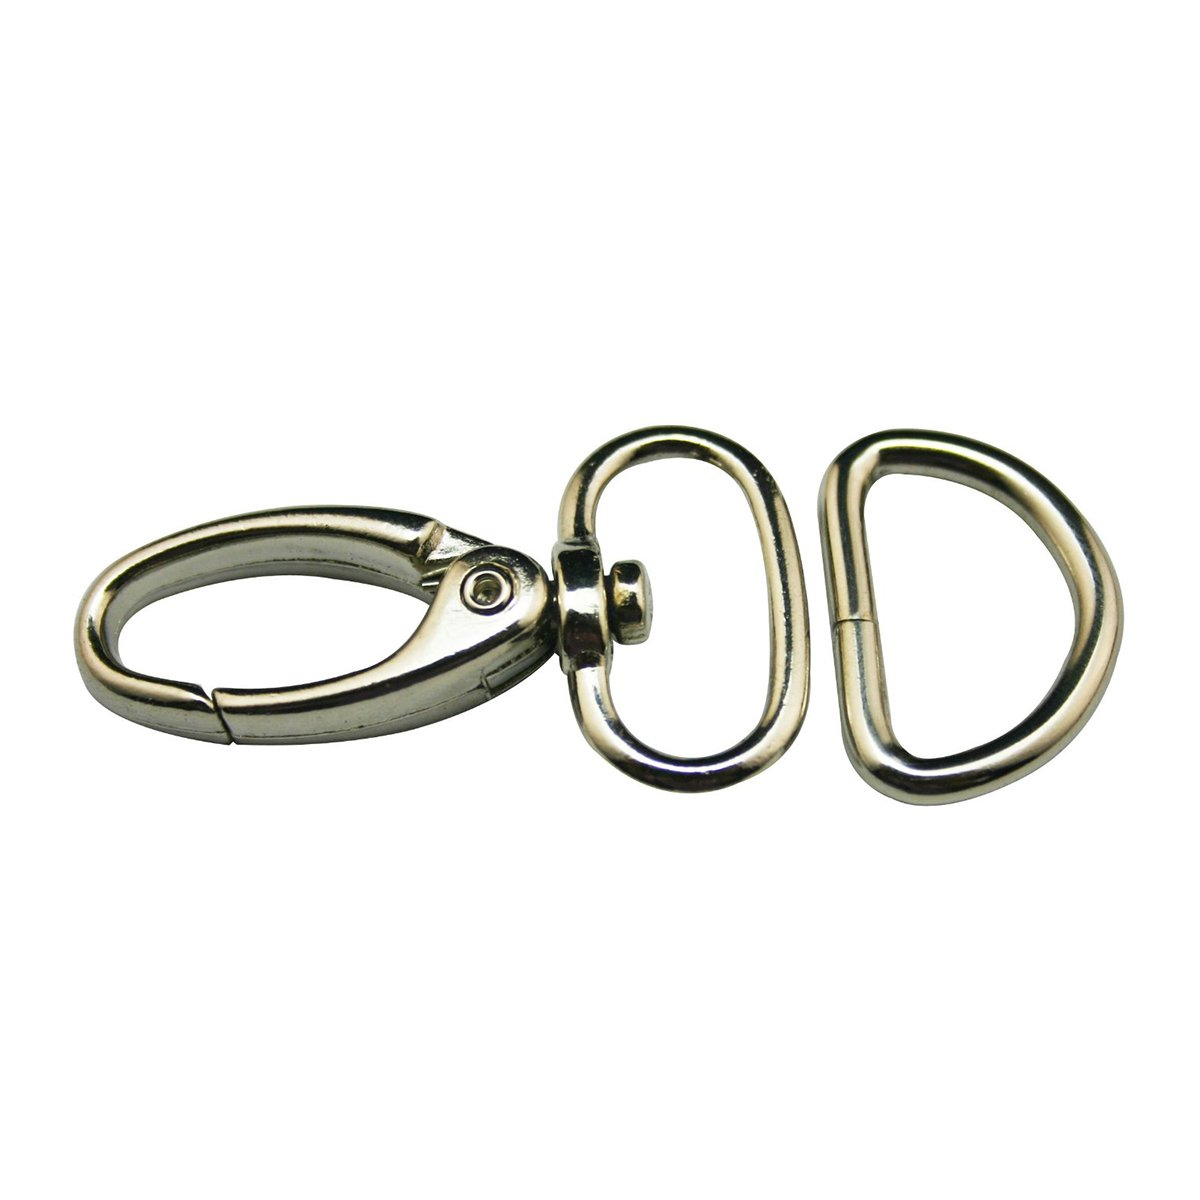 ULTNICE 30pcs Lobster Clasp Swivel Trigger Lobster Snap Clasps Hooks with D Rings